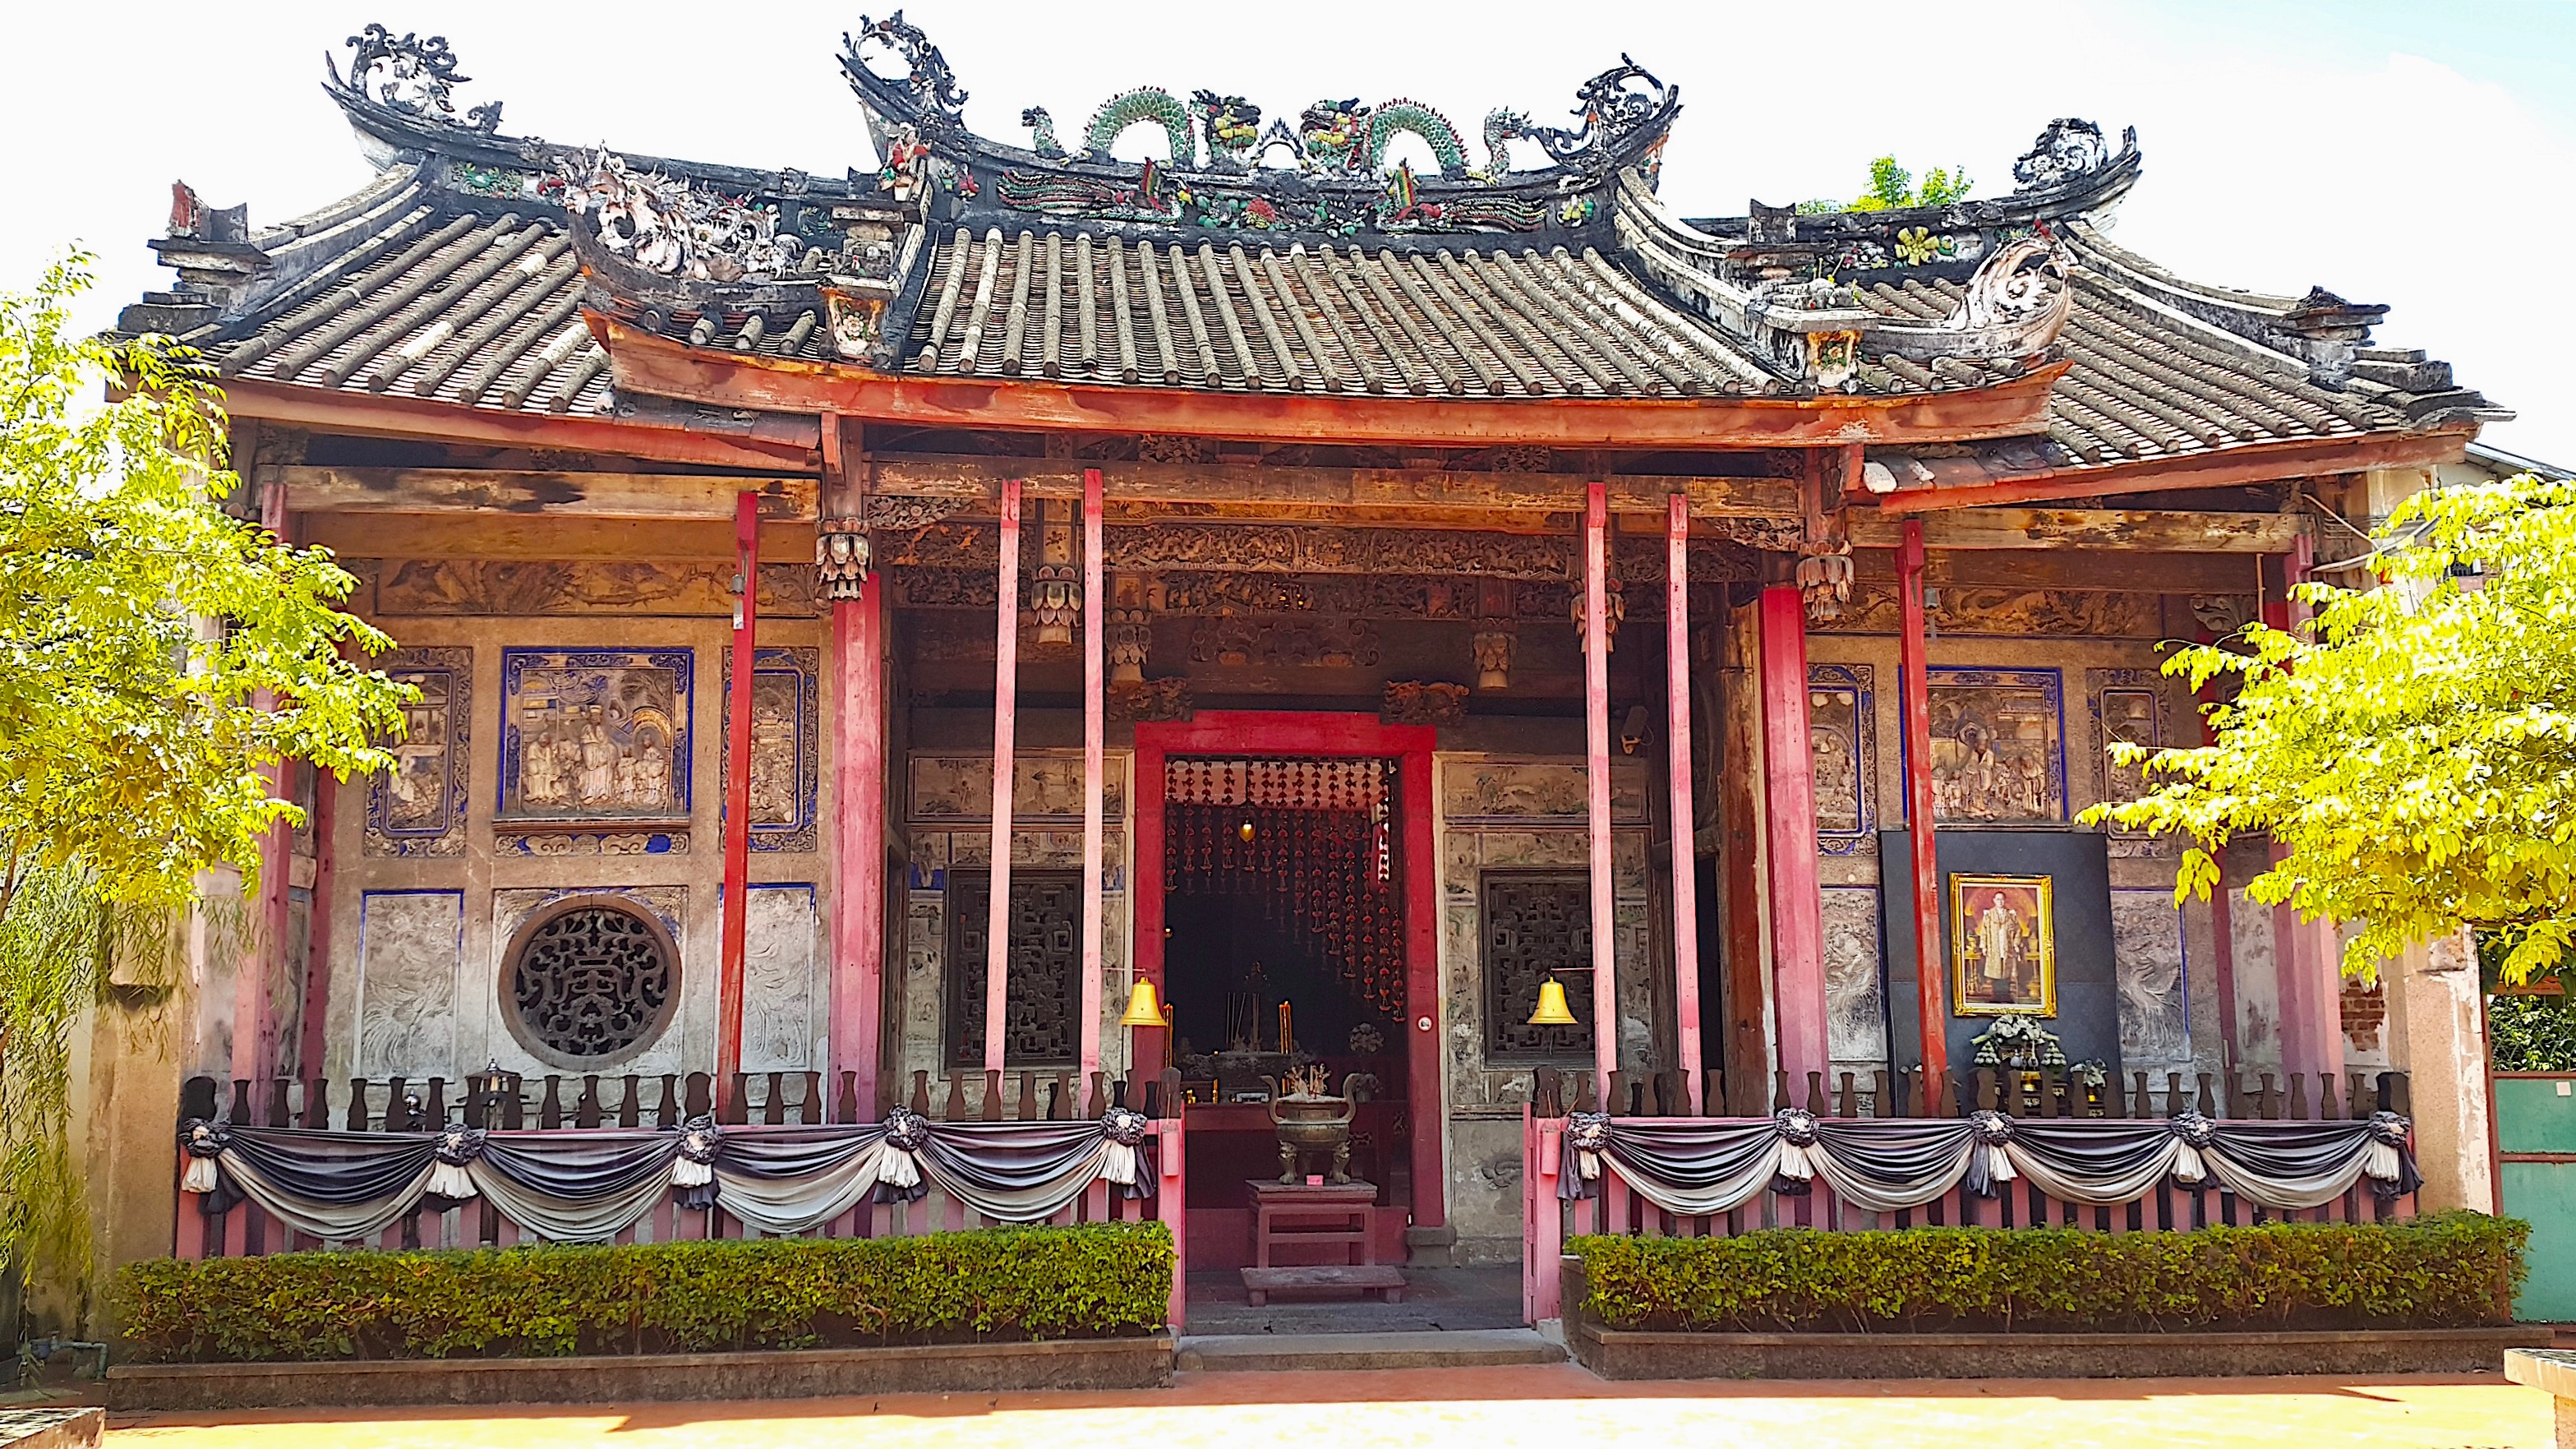 View of the Kuan Yin Shrine